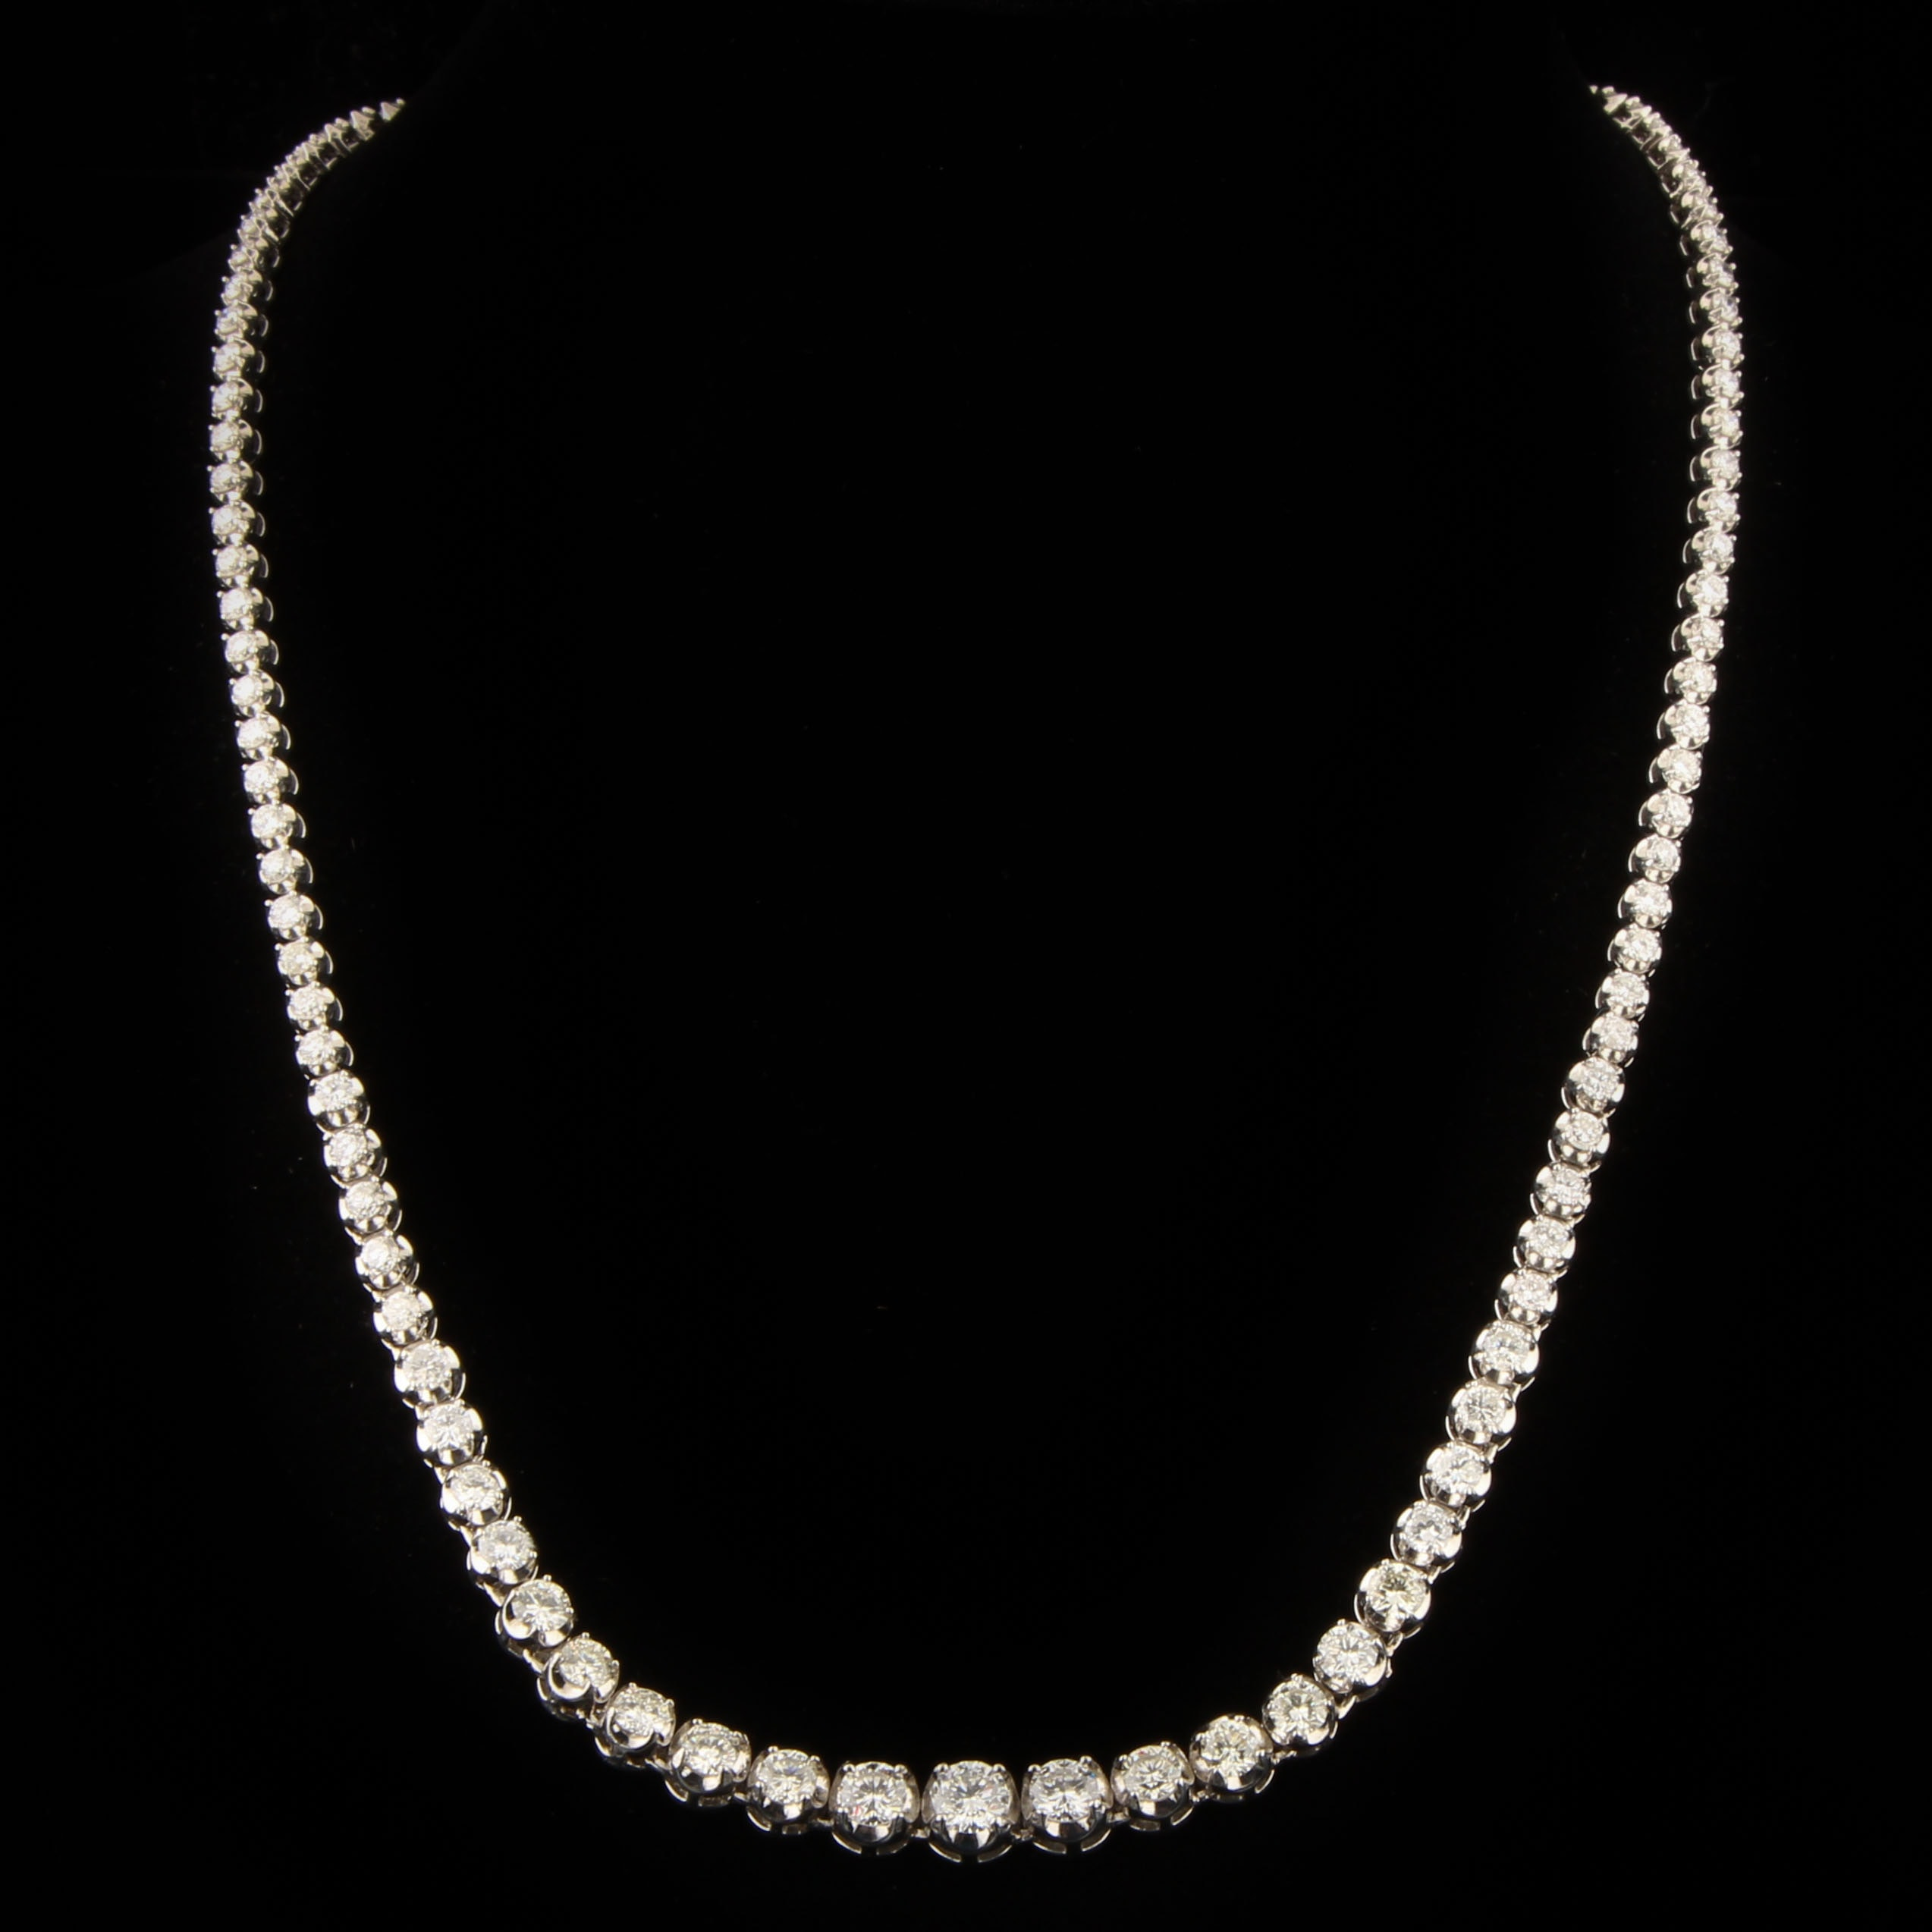 Platinum and 8.42 CTW Diamond Necklace